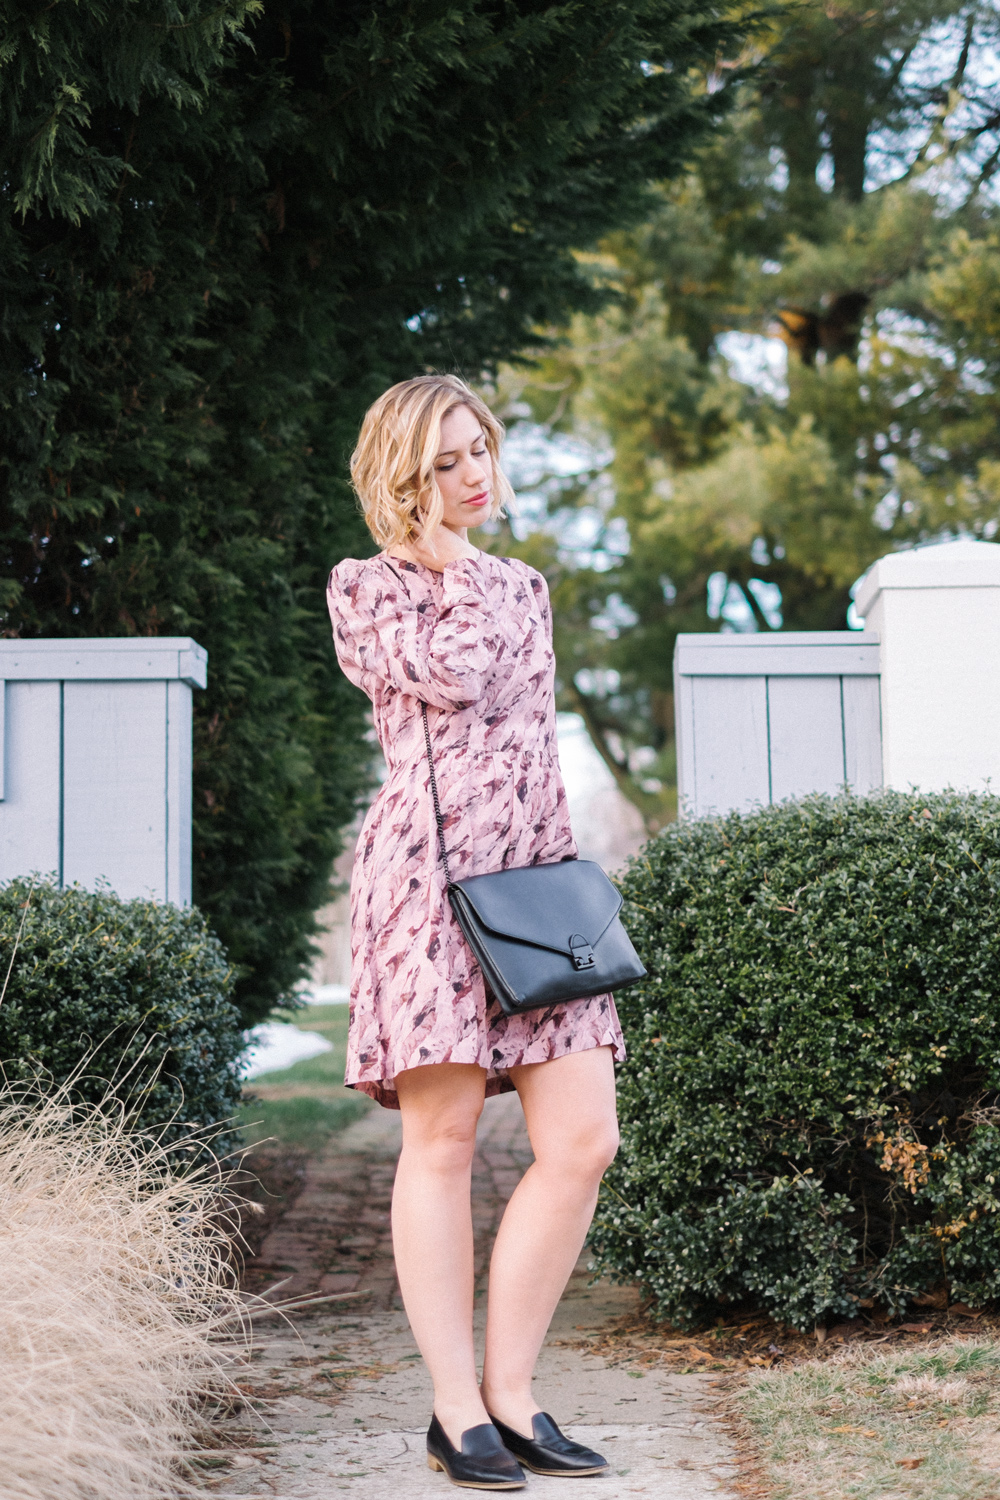 Blush dress + loafers + oversized clutch  (see full outfit post here!)